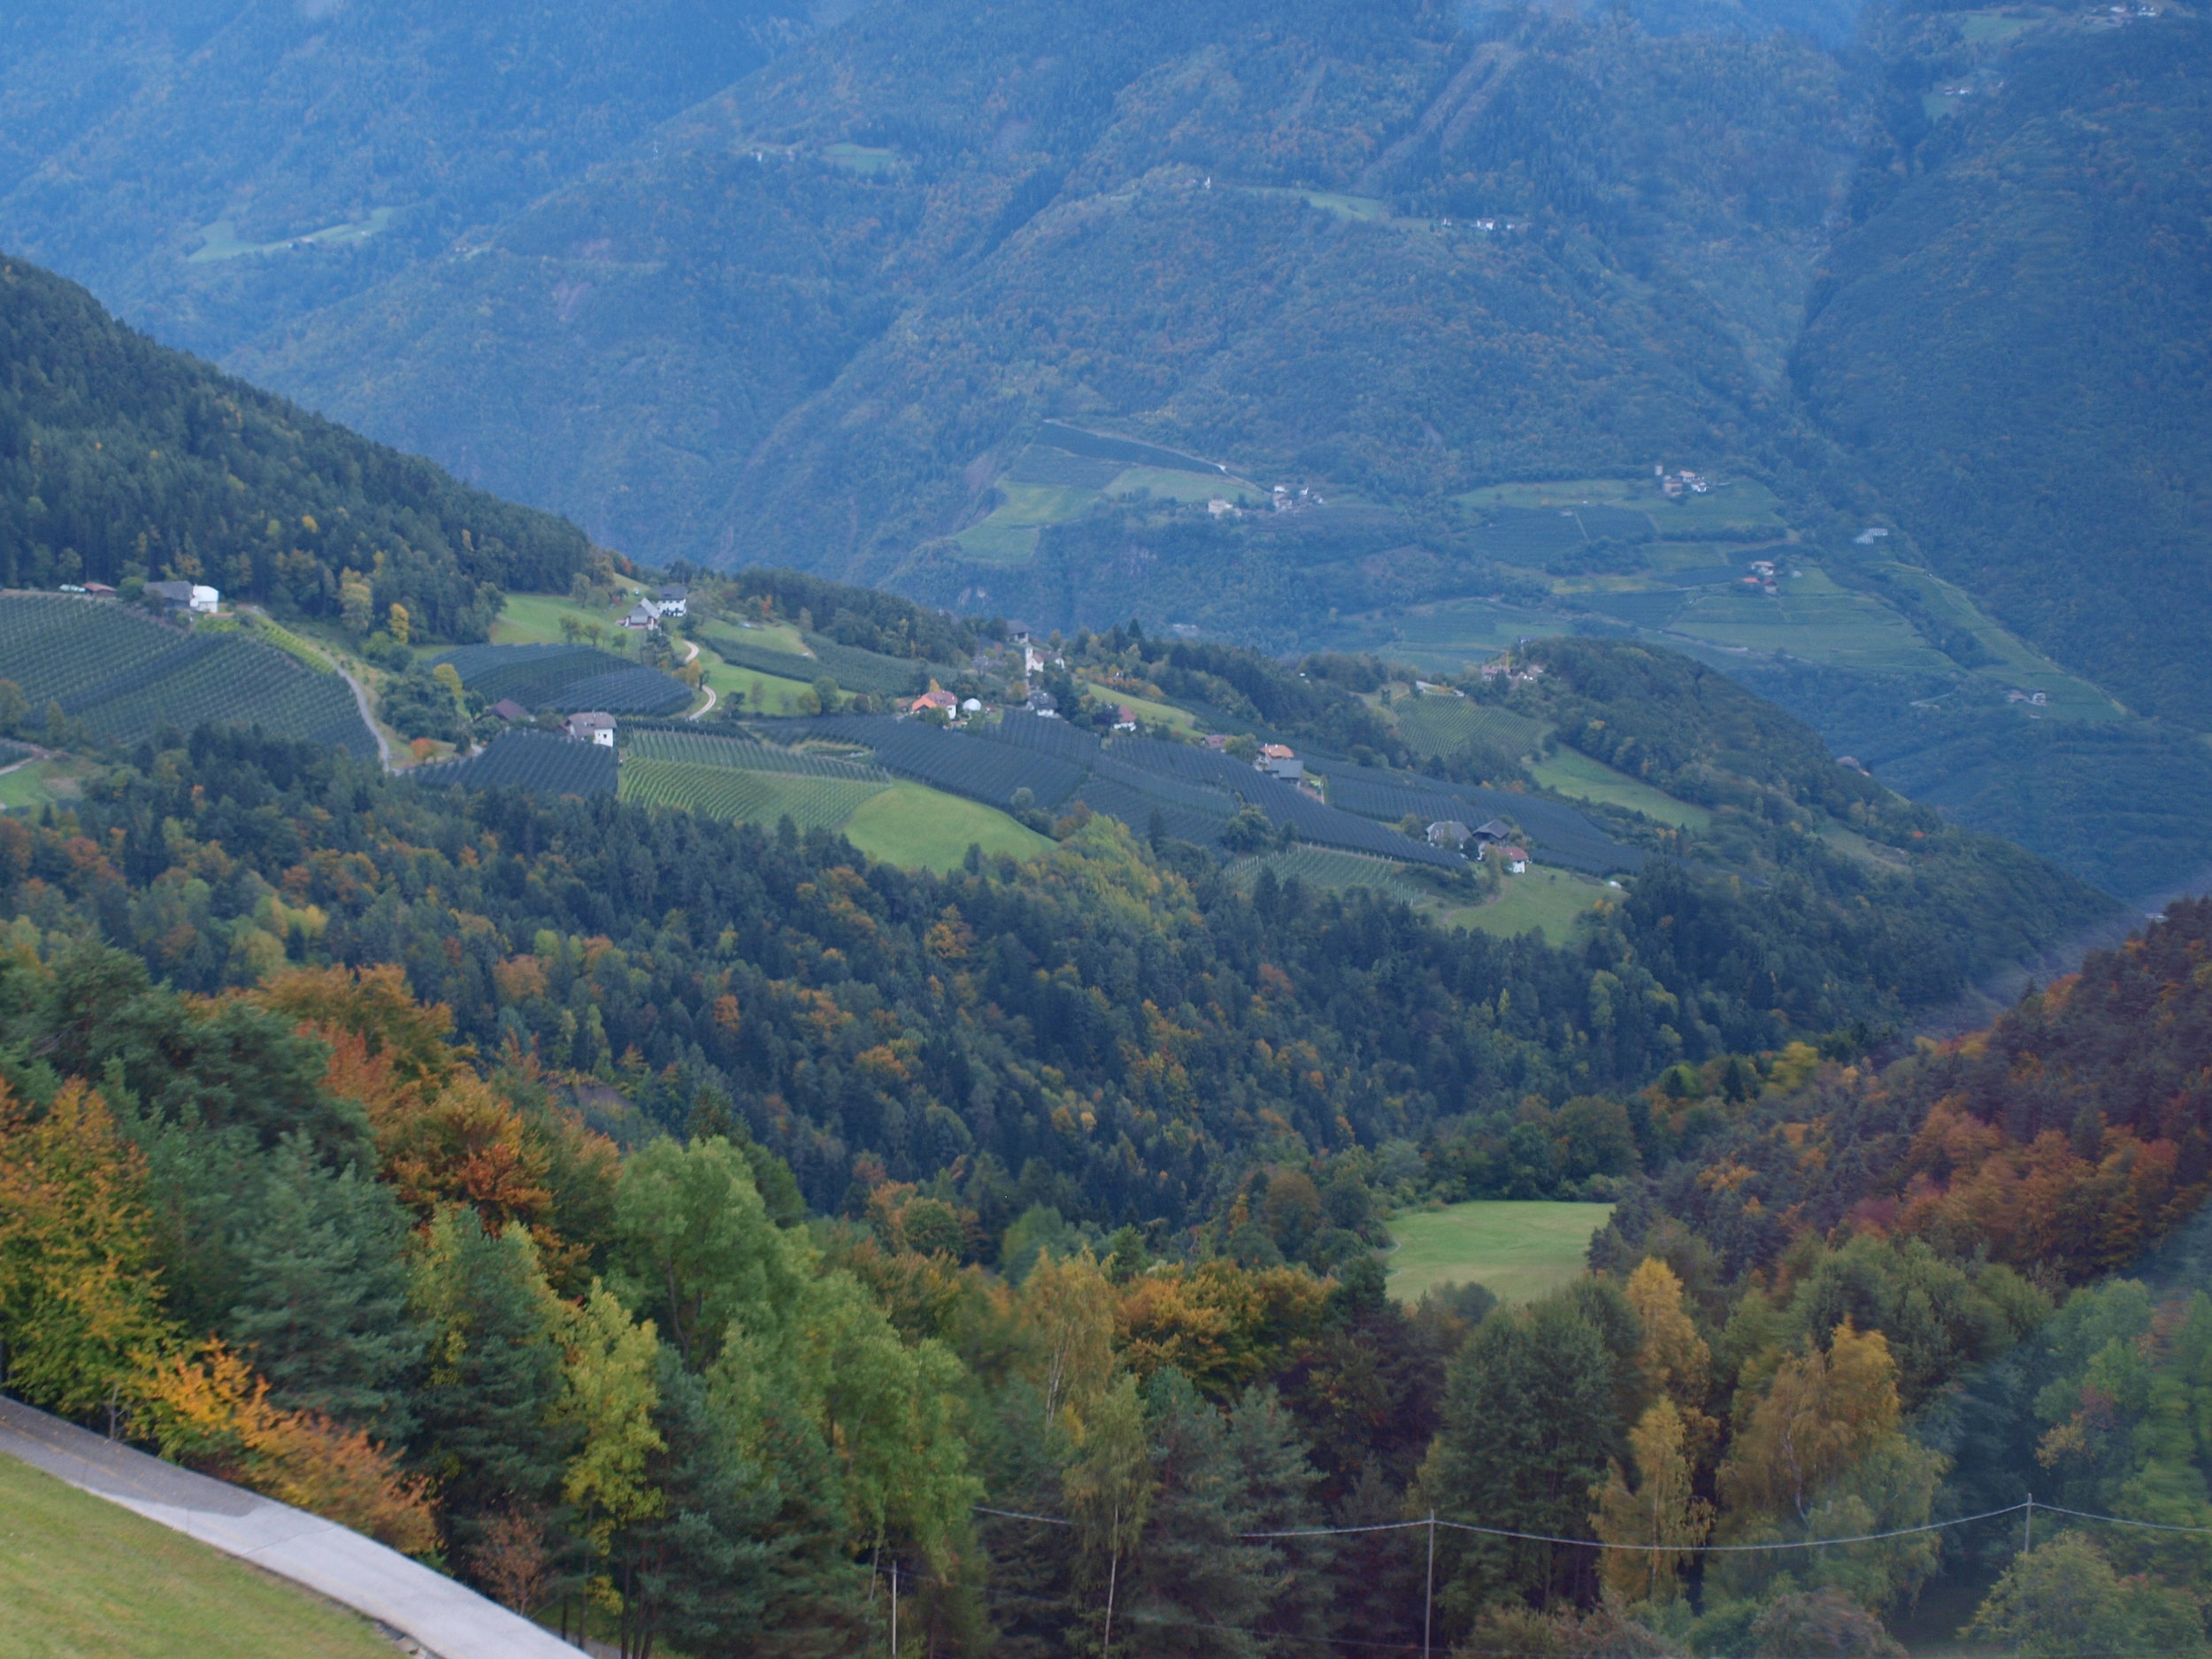 The valley below (taken from the gondola)